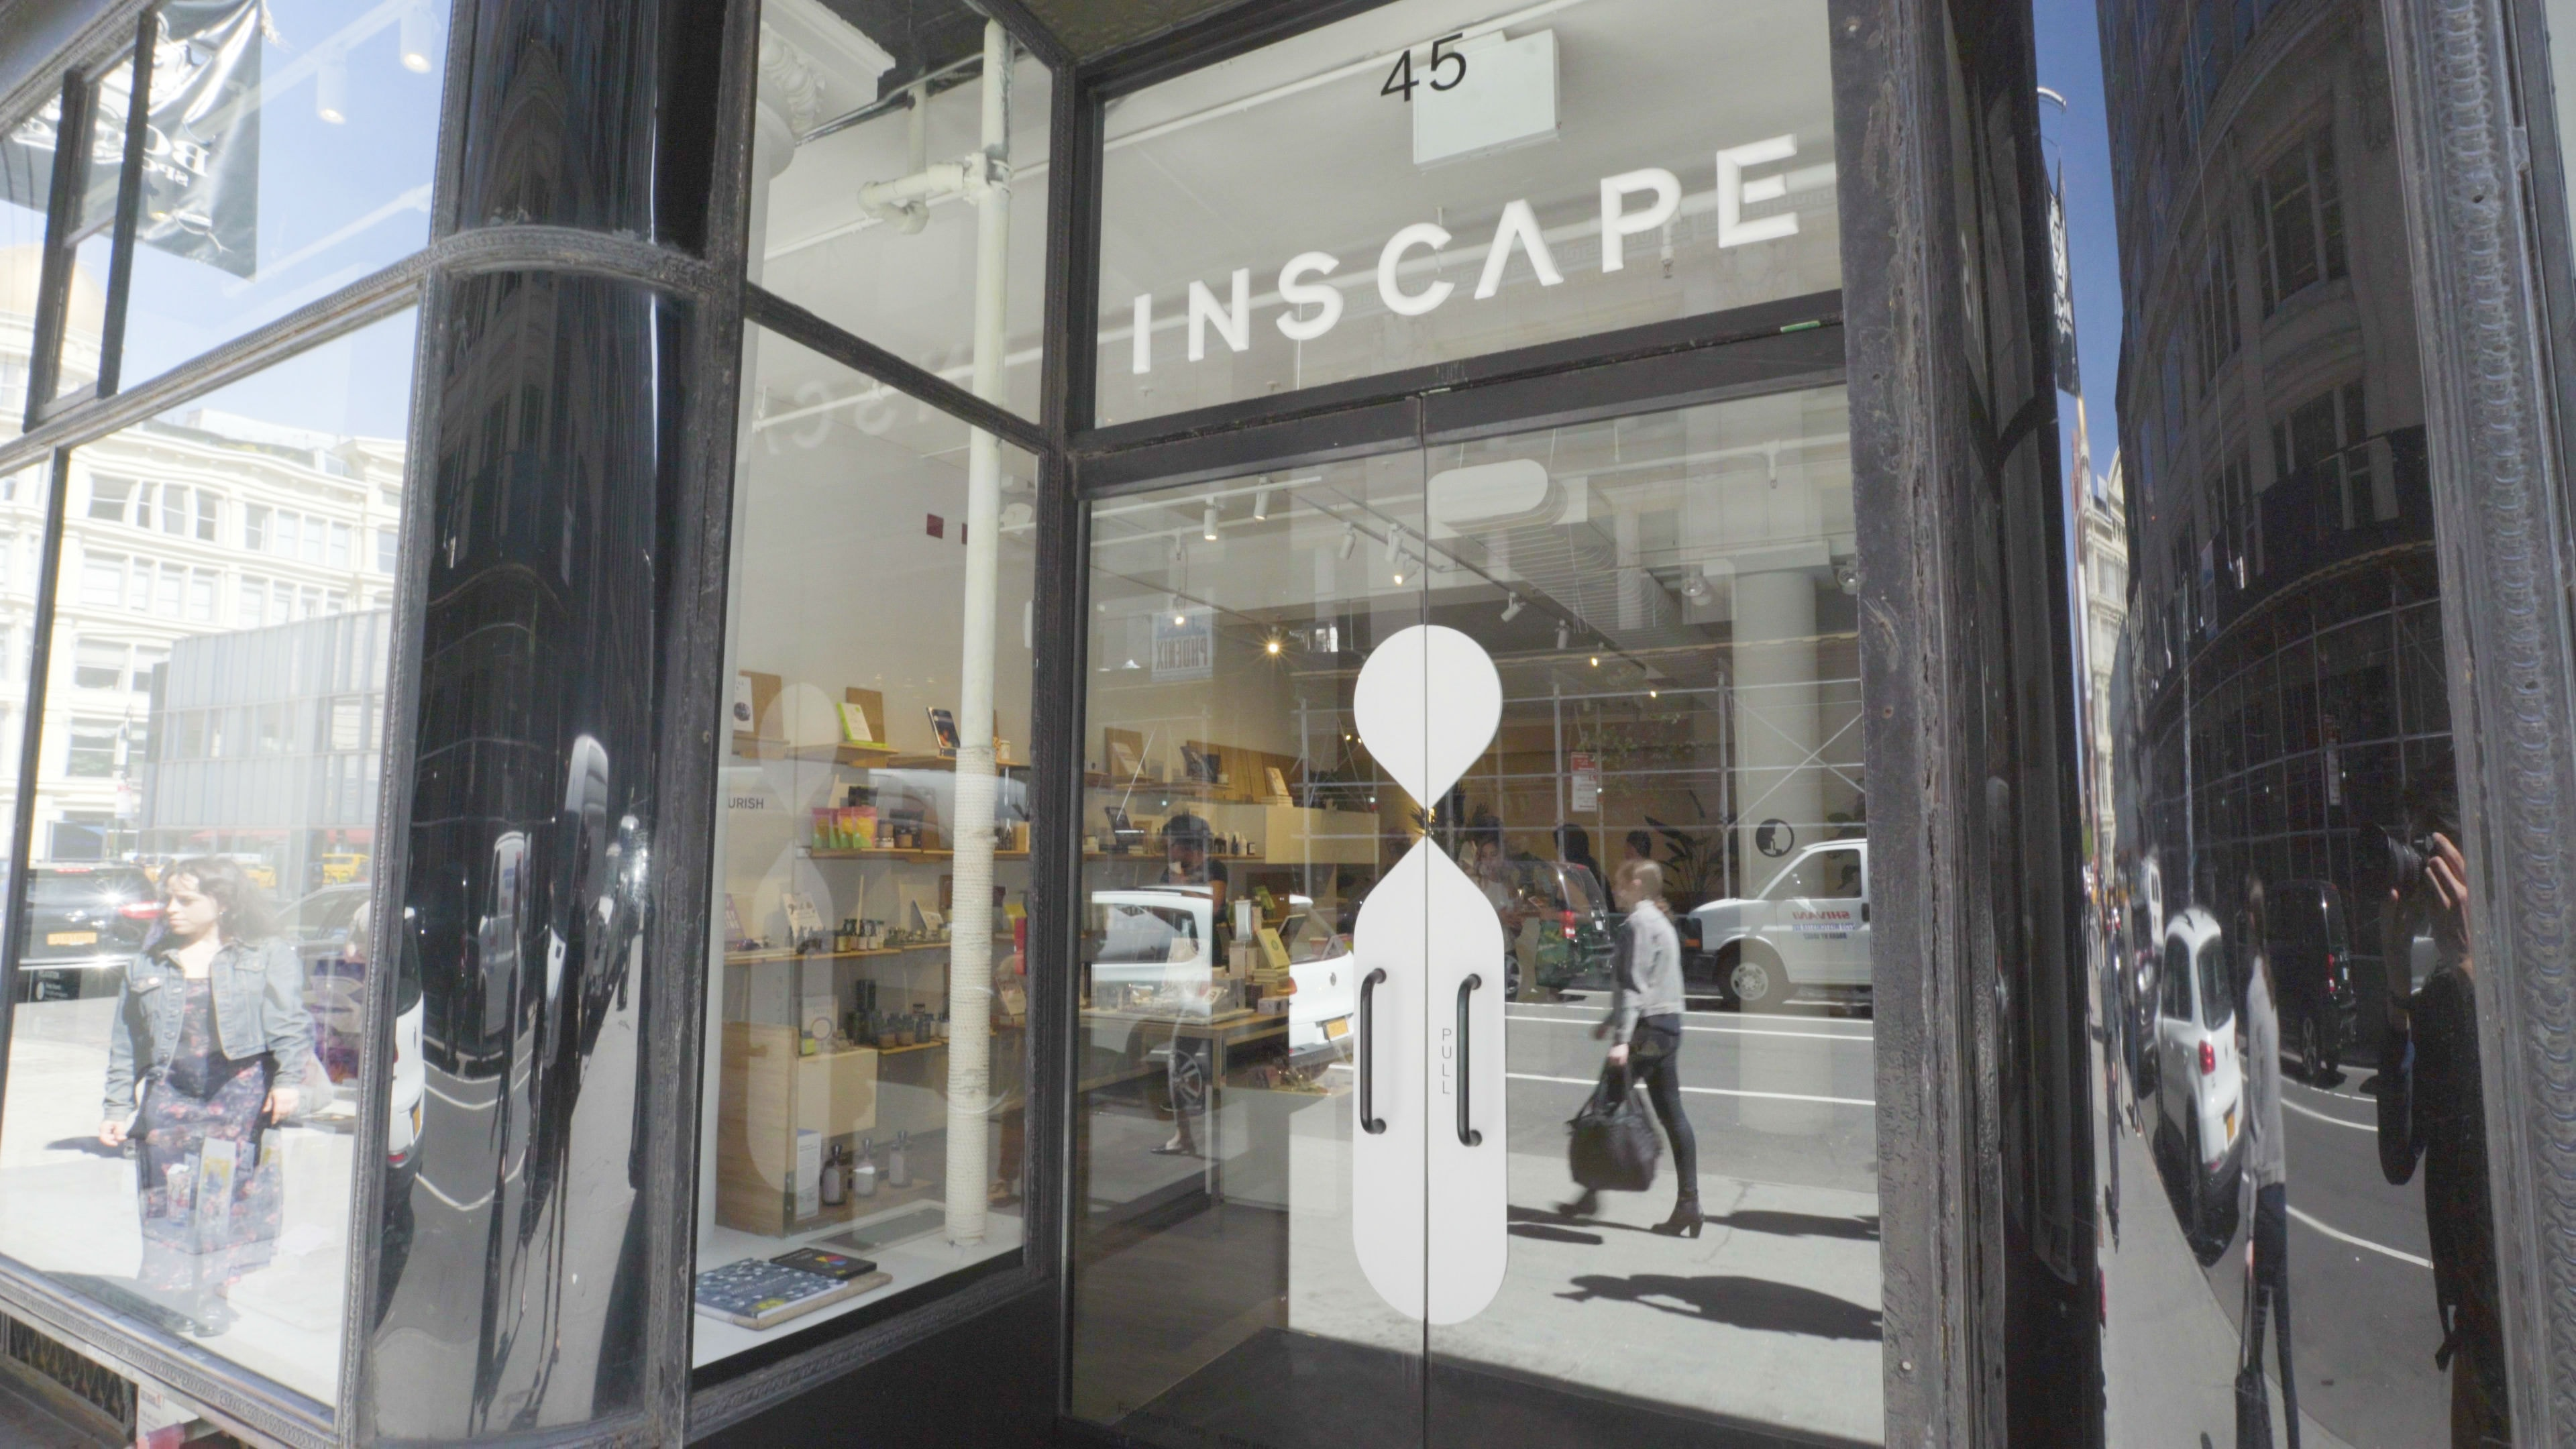 Inscape's physical location in New York